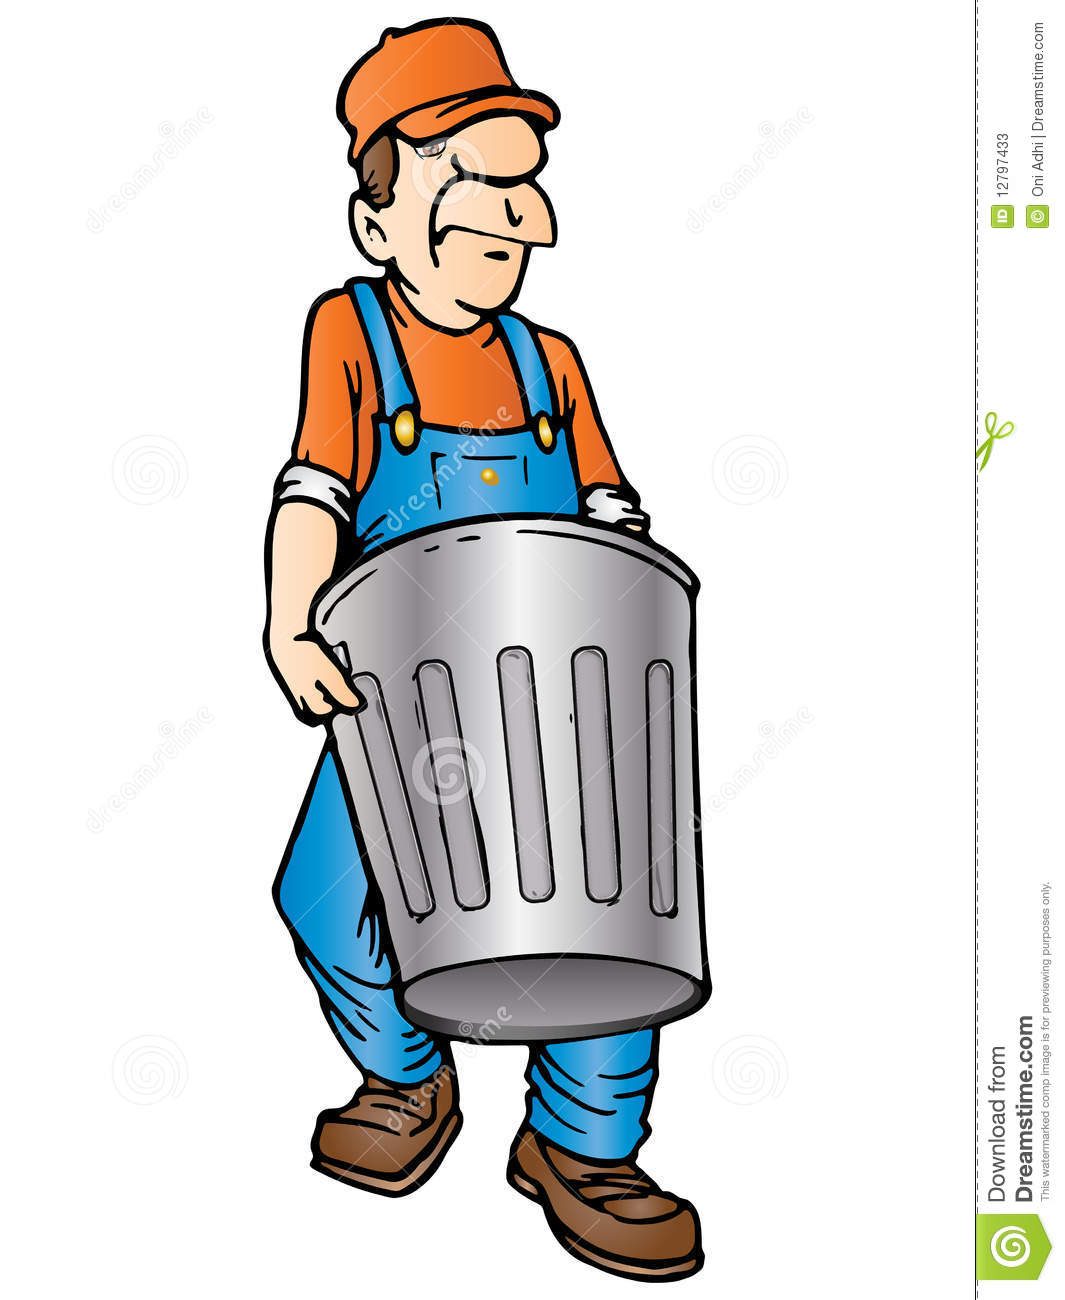 Clip Art Garbage Clipart throwing garbage clipart kid 2014 clipartpanda com about terms